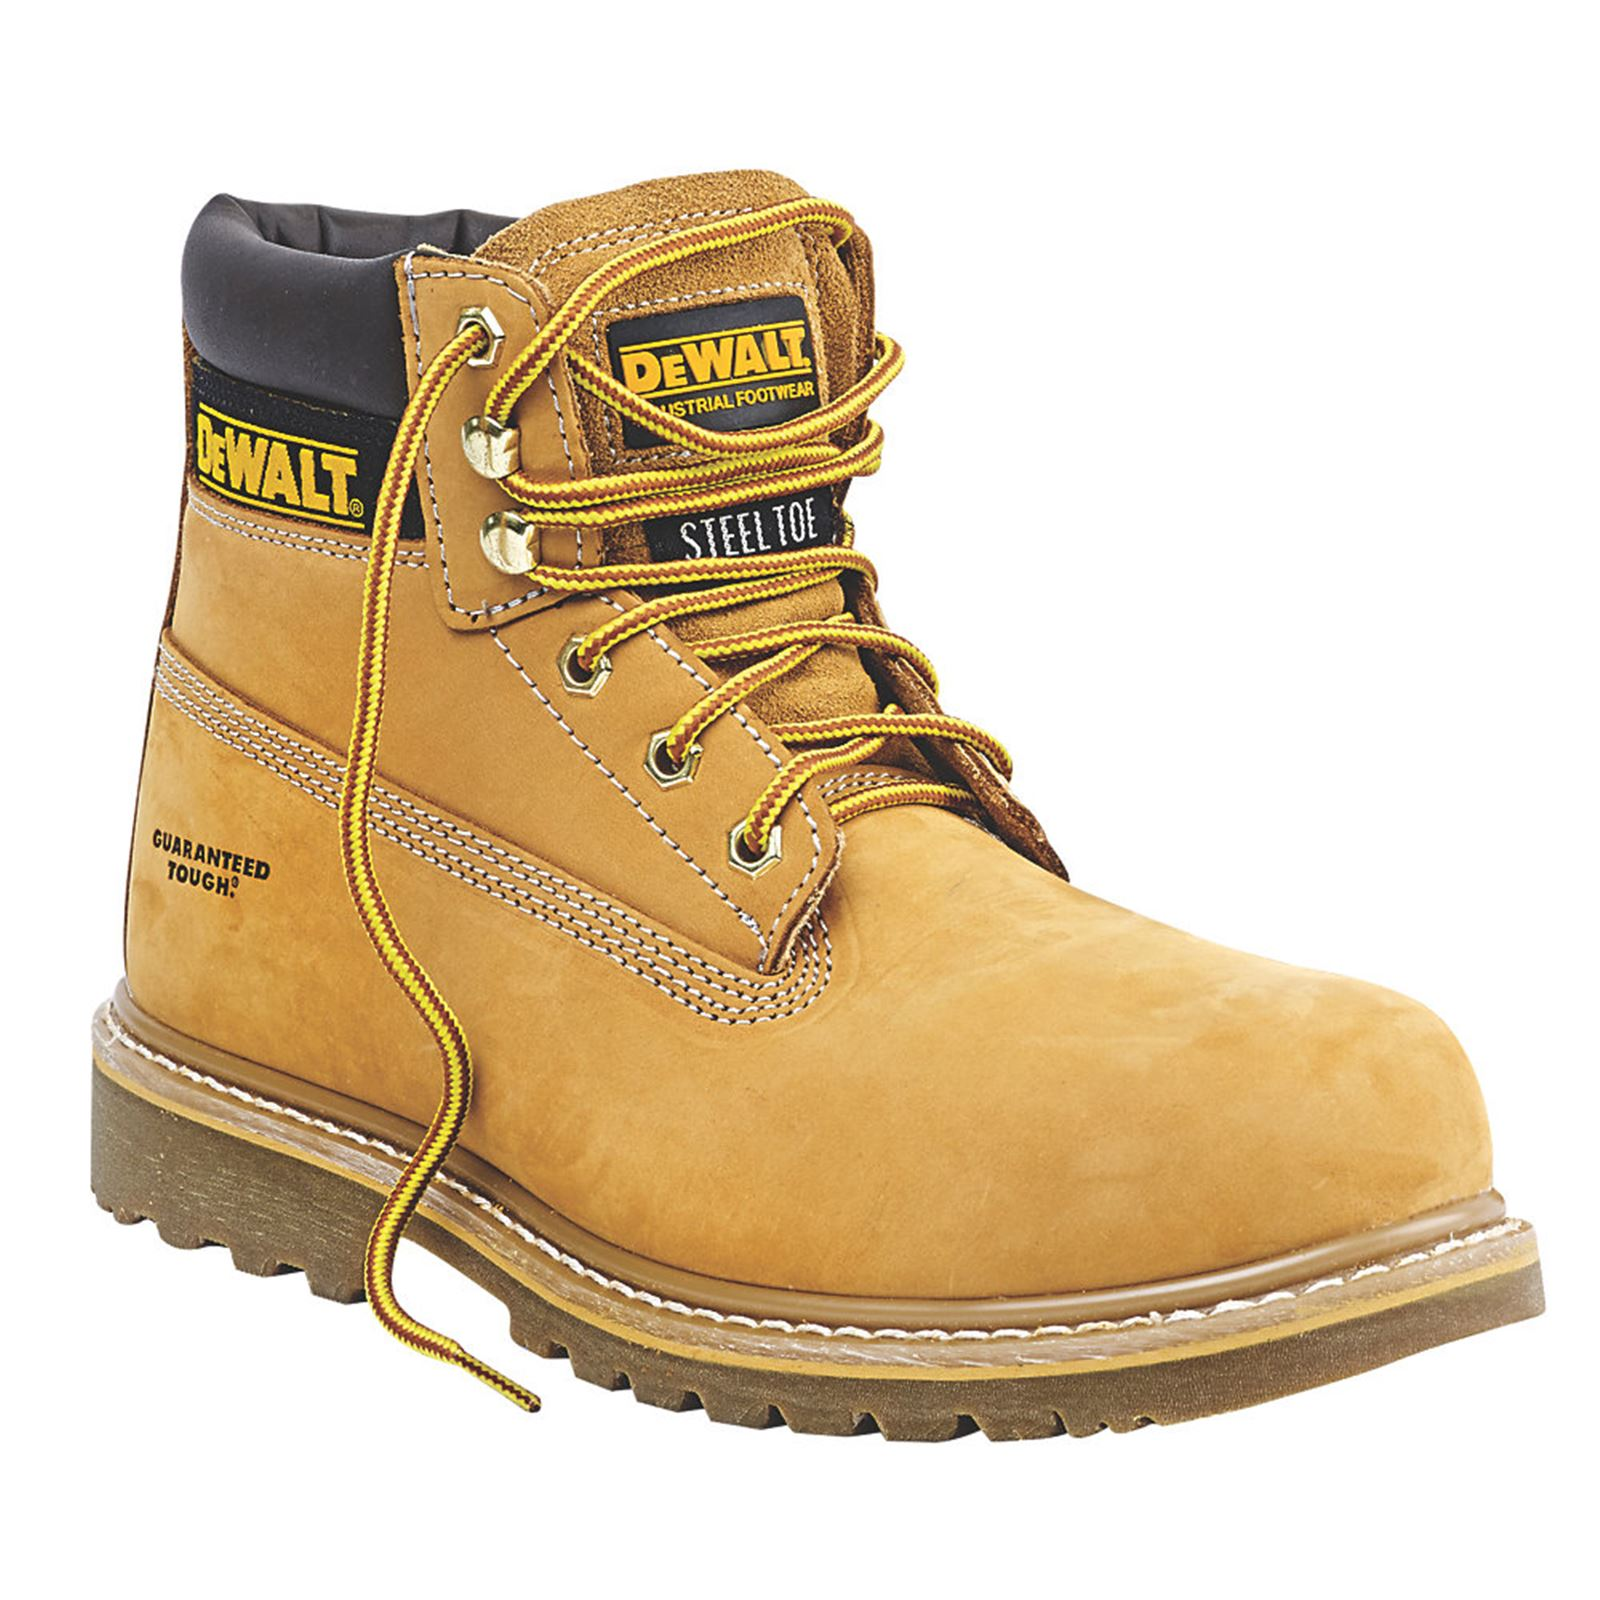 Dewalt 6 in heavy duty goodyear welted Safety Shoes in Dubai,UAE - EXPLORER from AABTools